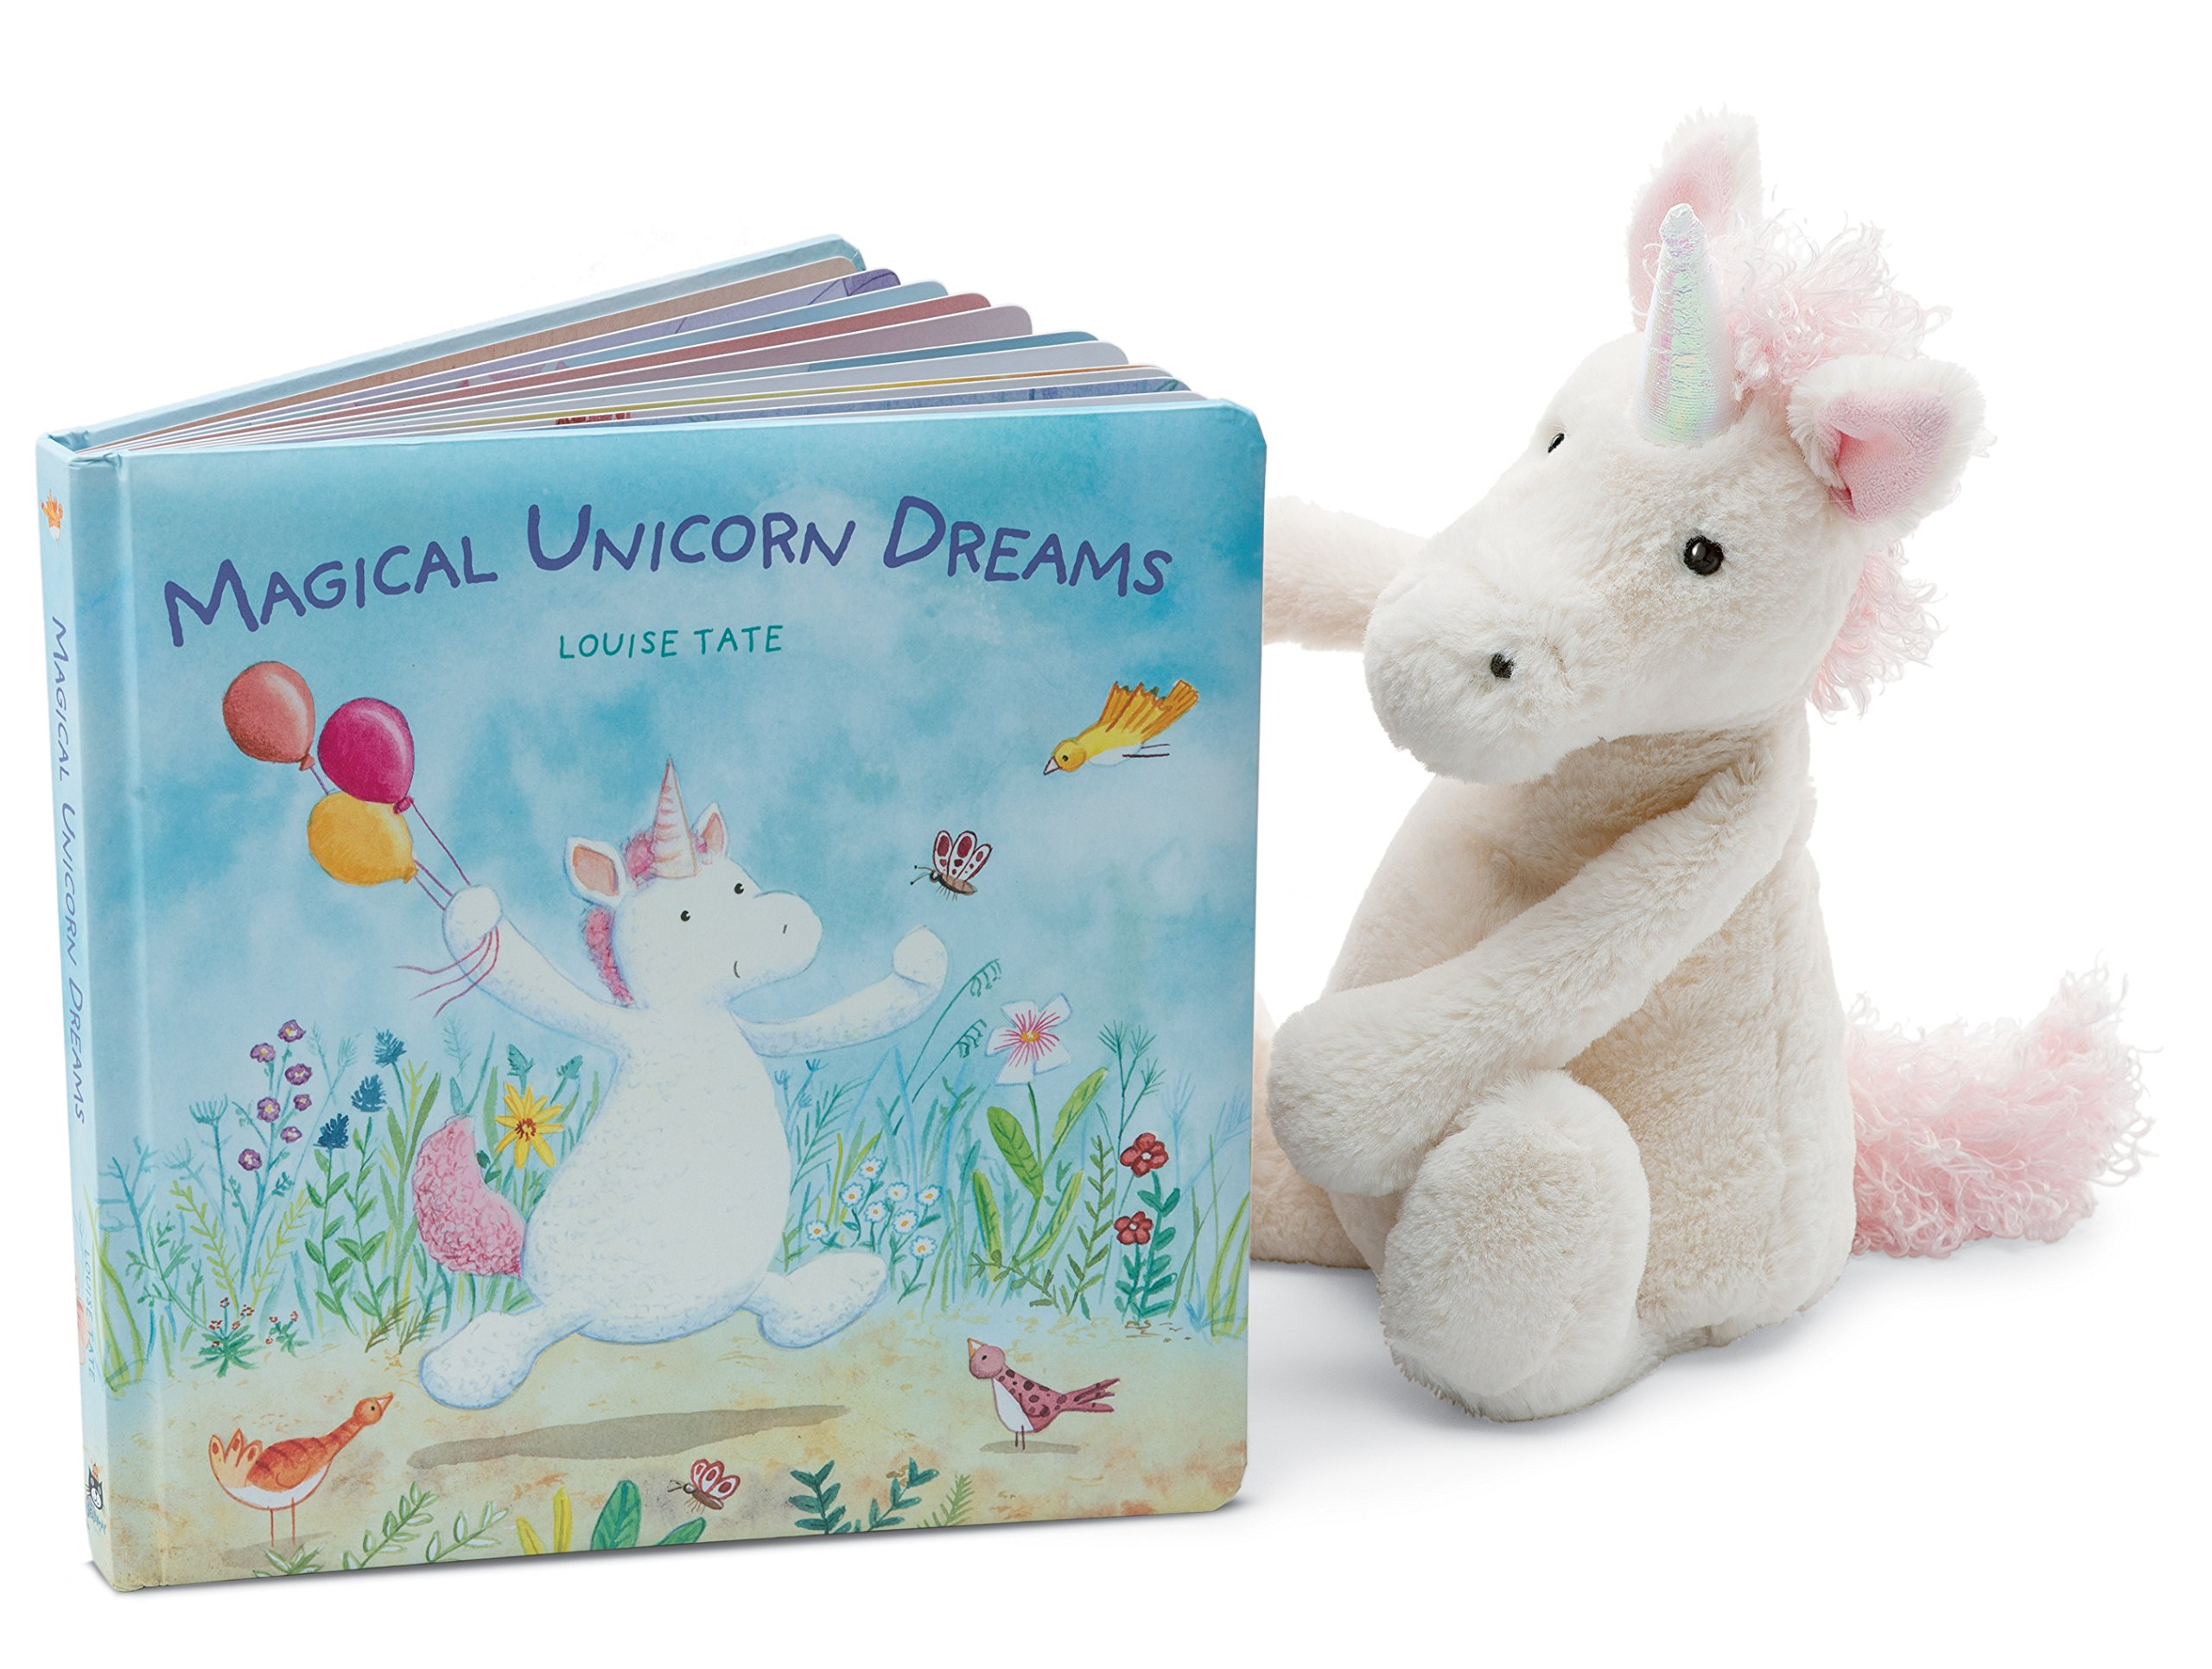 Jellycat Magical Unicorn Dreams Board Book and Bashful Unicorn, Medium - 12 inches by Jellycat (Image #1)